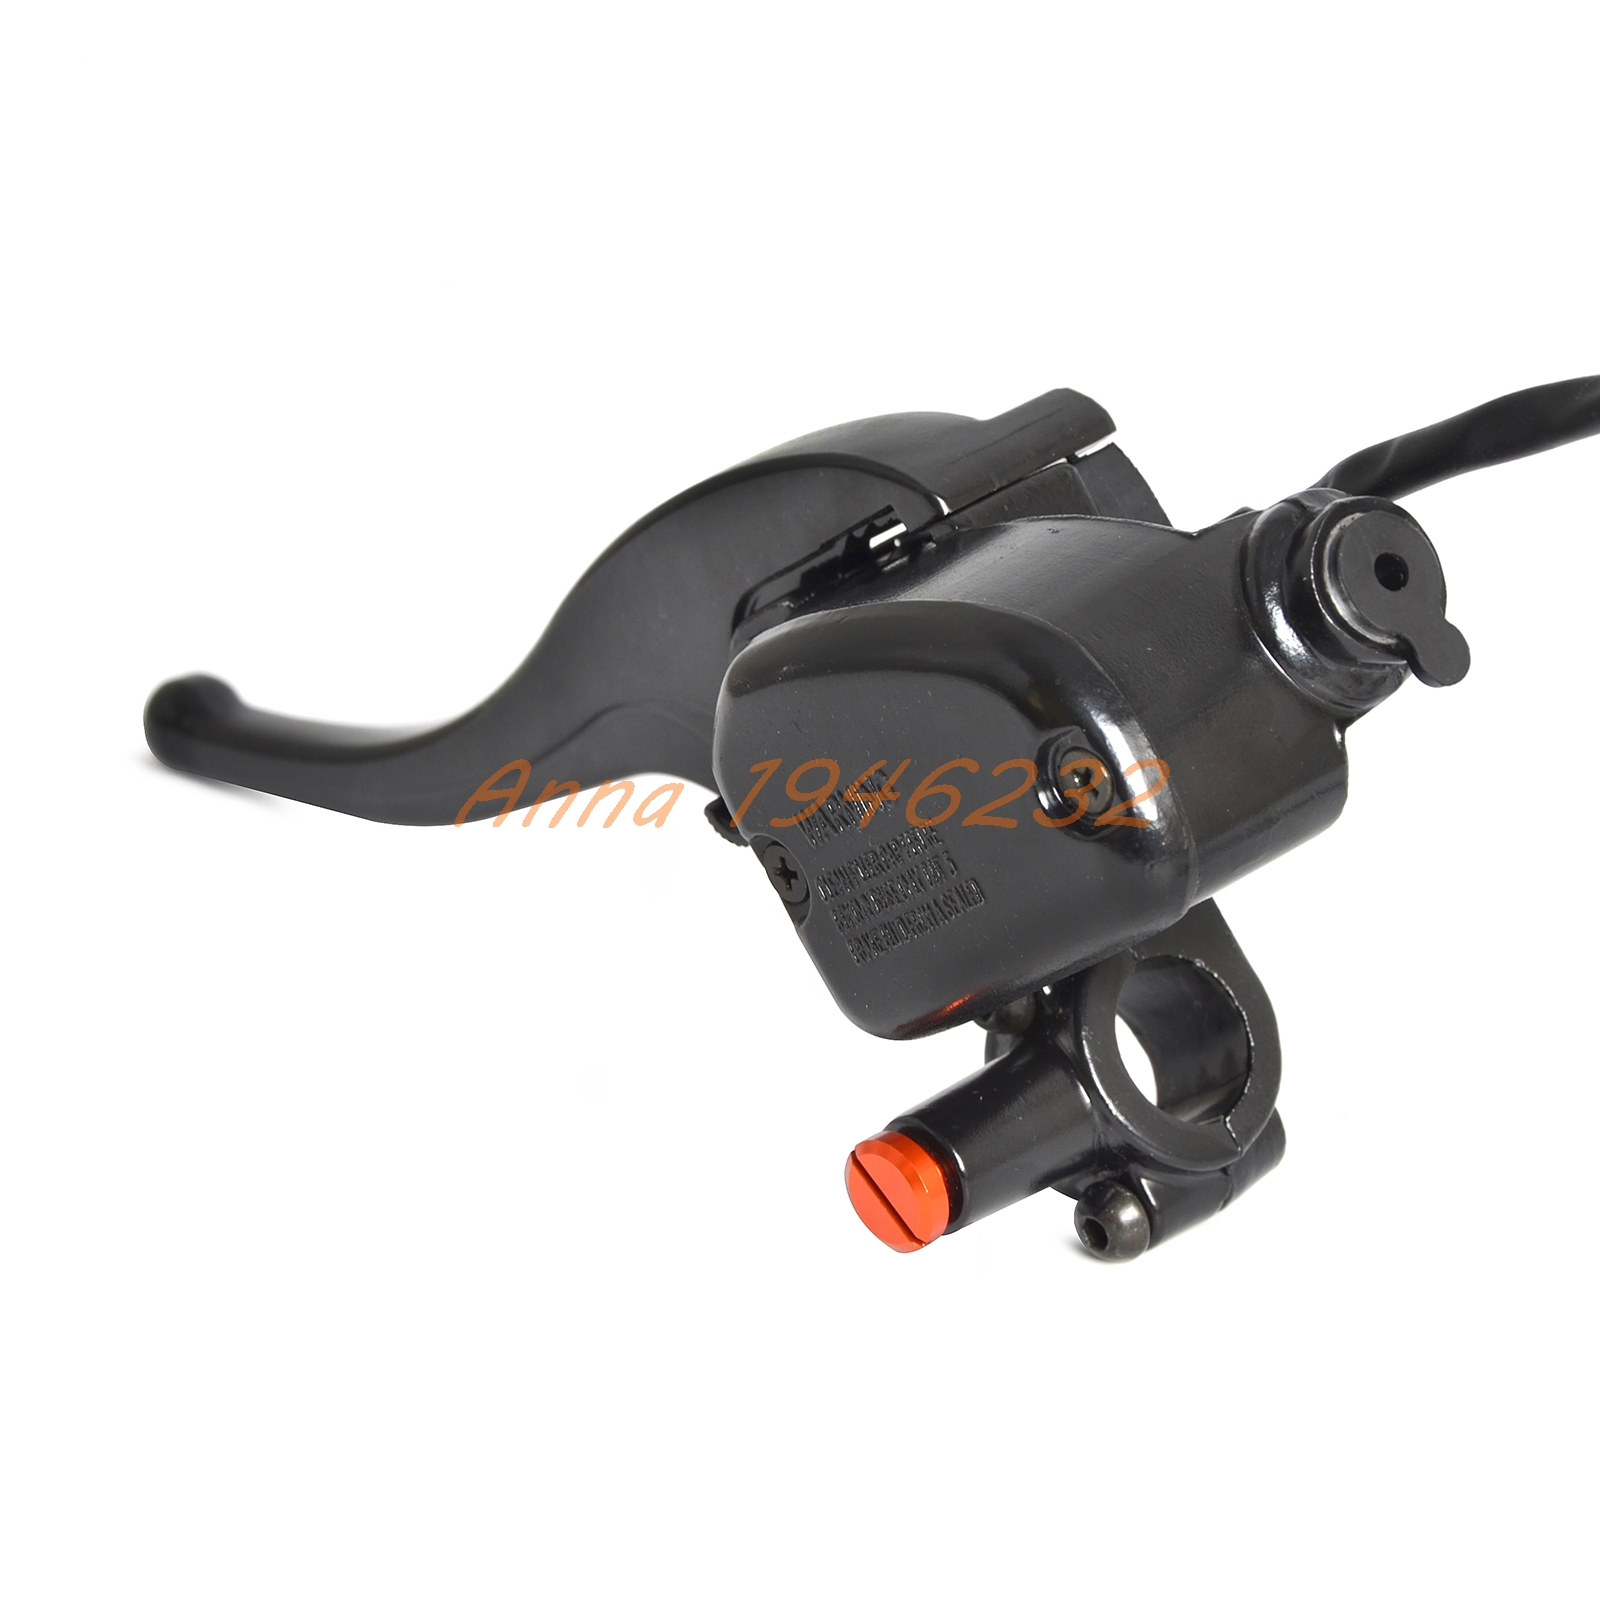 Left Hydraulic Brake Master Cylinder Lever Assembly For Palaris ATV UTV SCRAMBLER 500 TRAIL BLAZER 330 BOSS FOREST 800 car styling brake master cylinder lever atv front left brake master cylinder for polaris sportsman 400 500 550 600 700 800 30